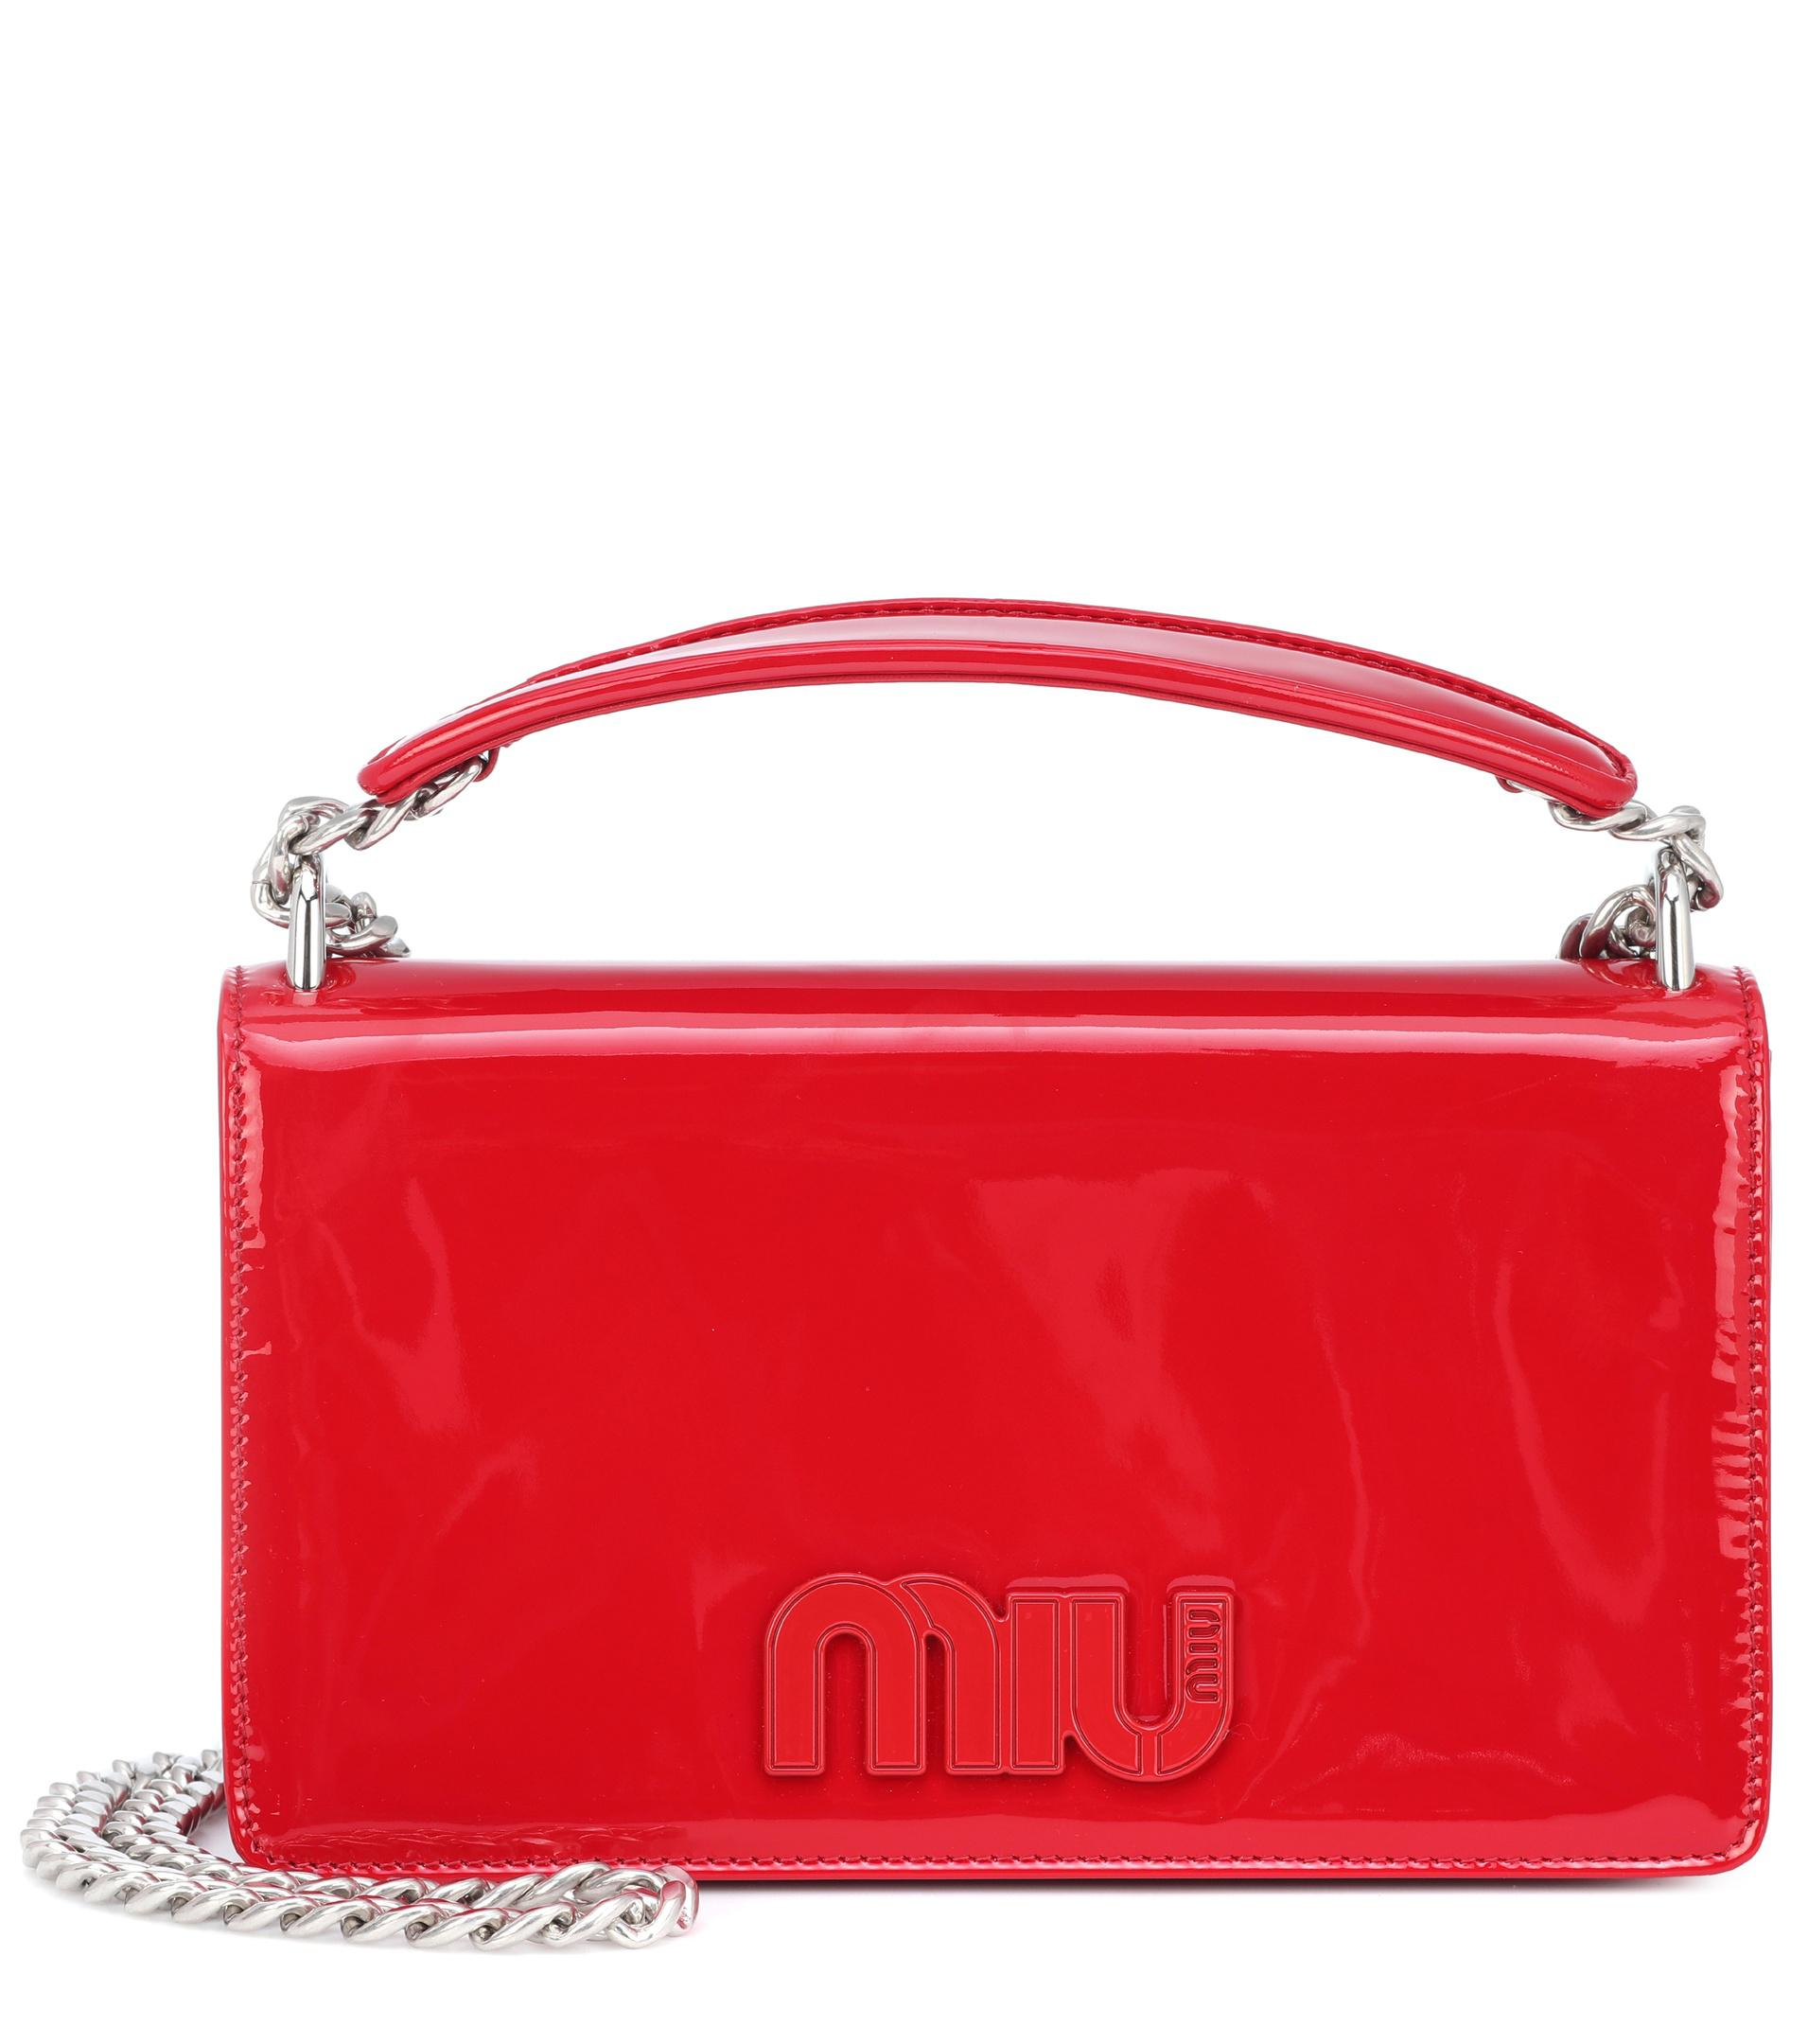 Miu Miu Patent Leather Shoulder Bag in Red - Lyst 916d097db4db3